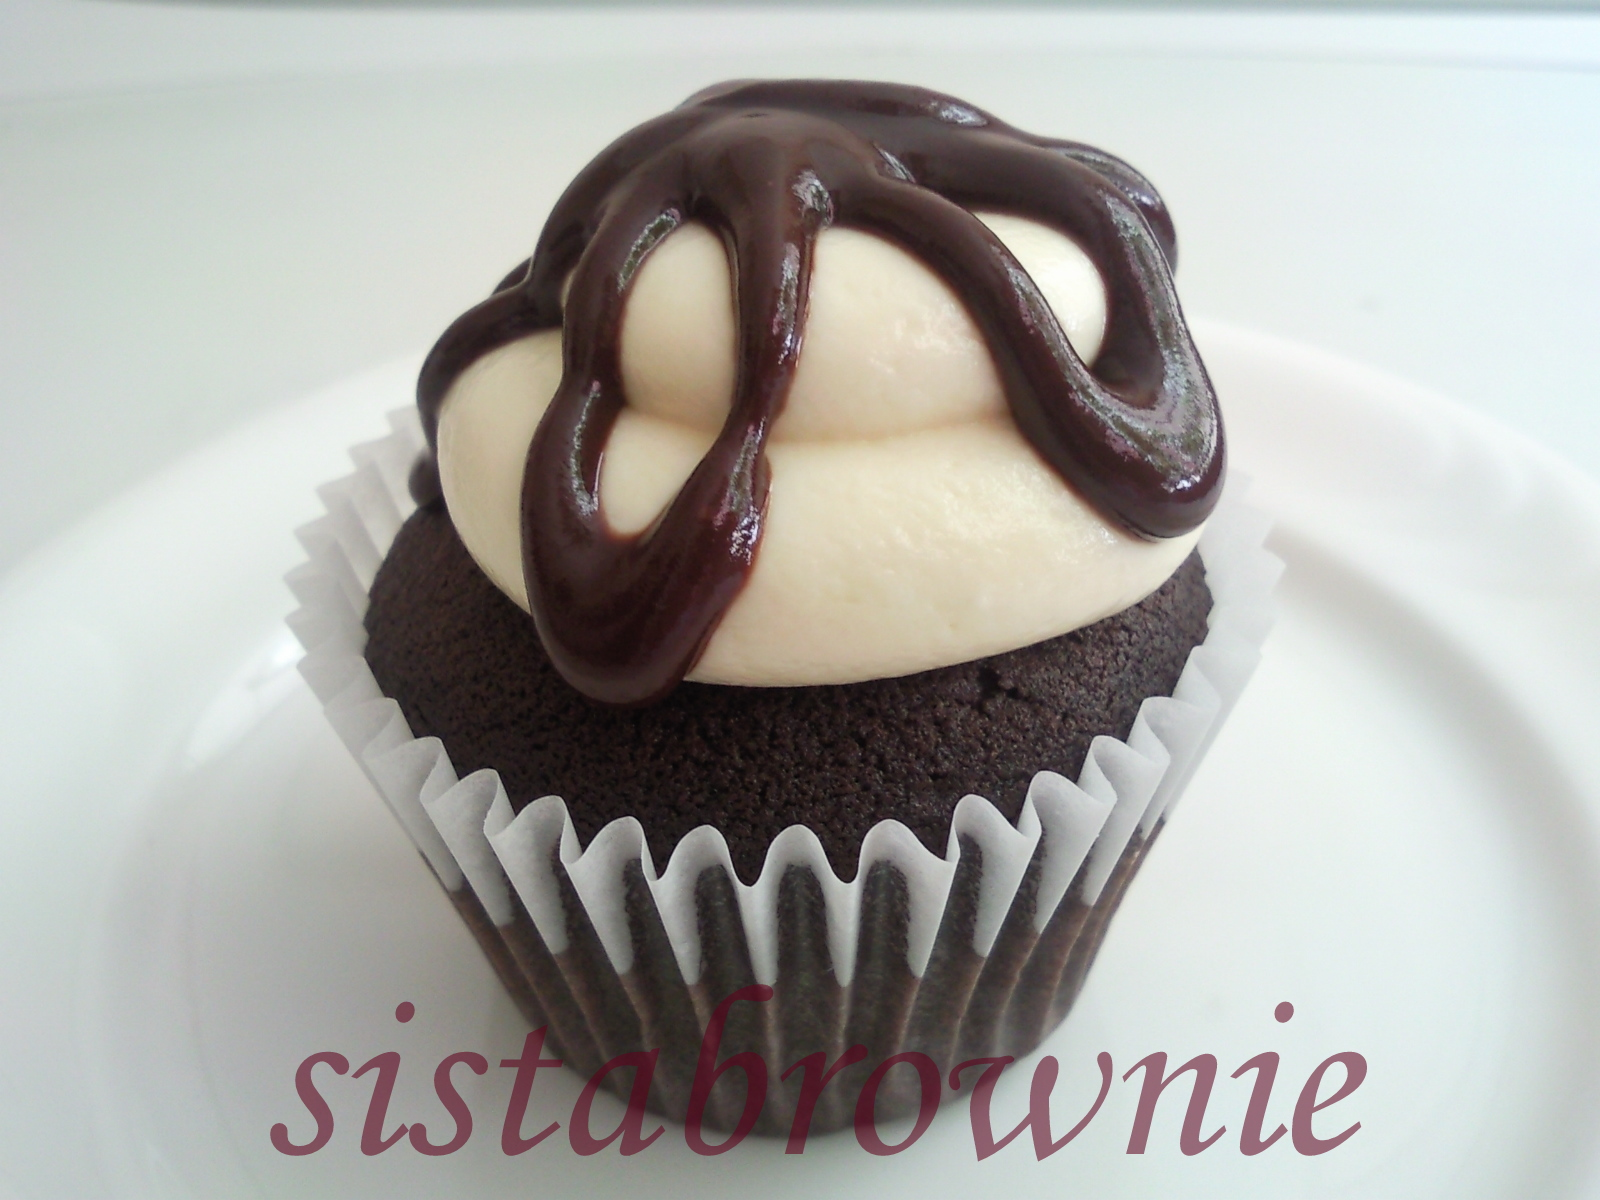 Sistabrownie for Chocolate fudge cream cheese frosting